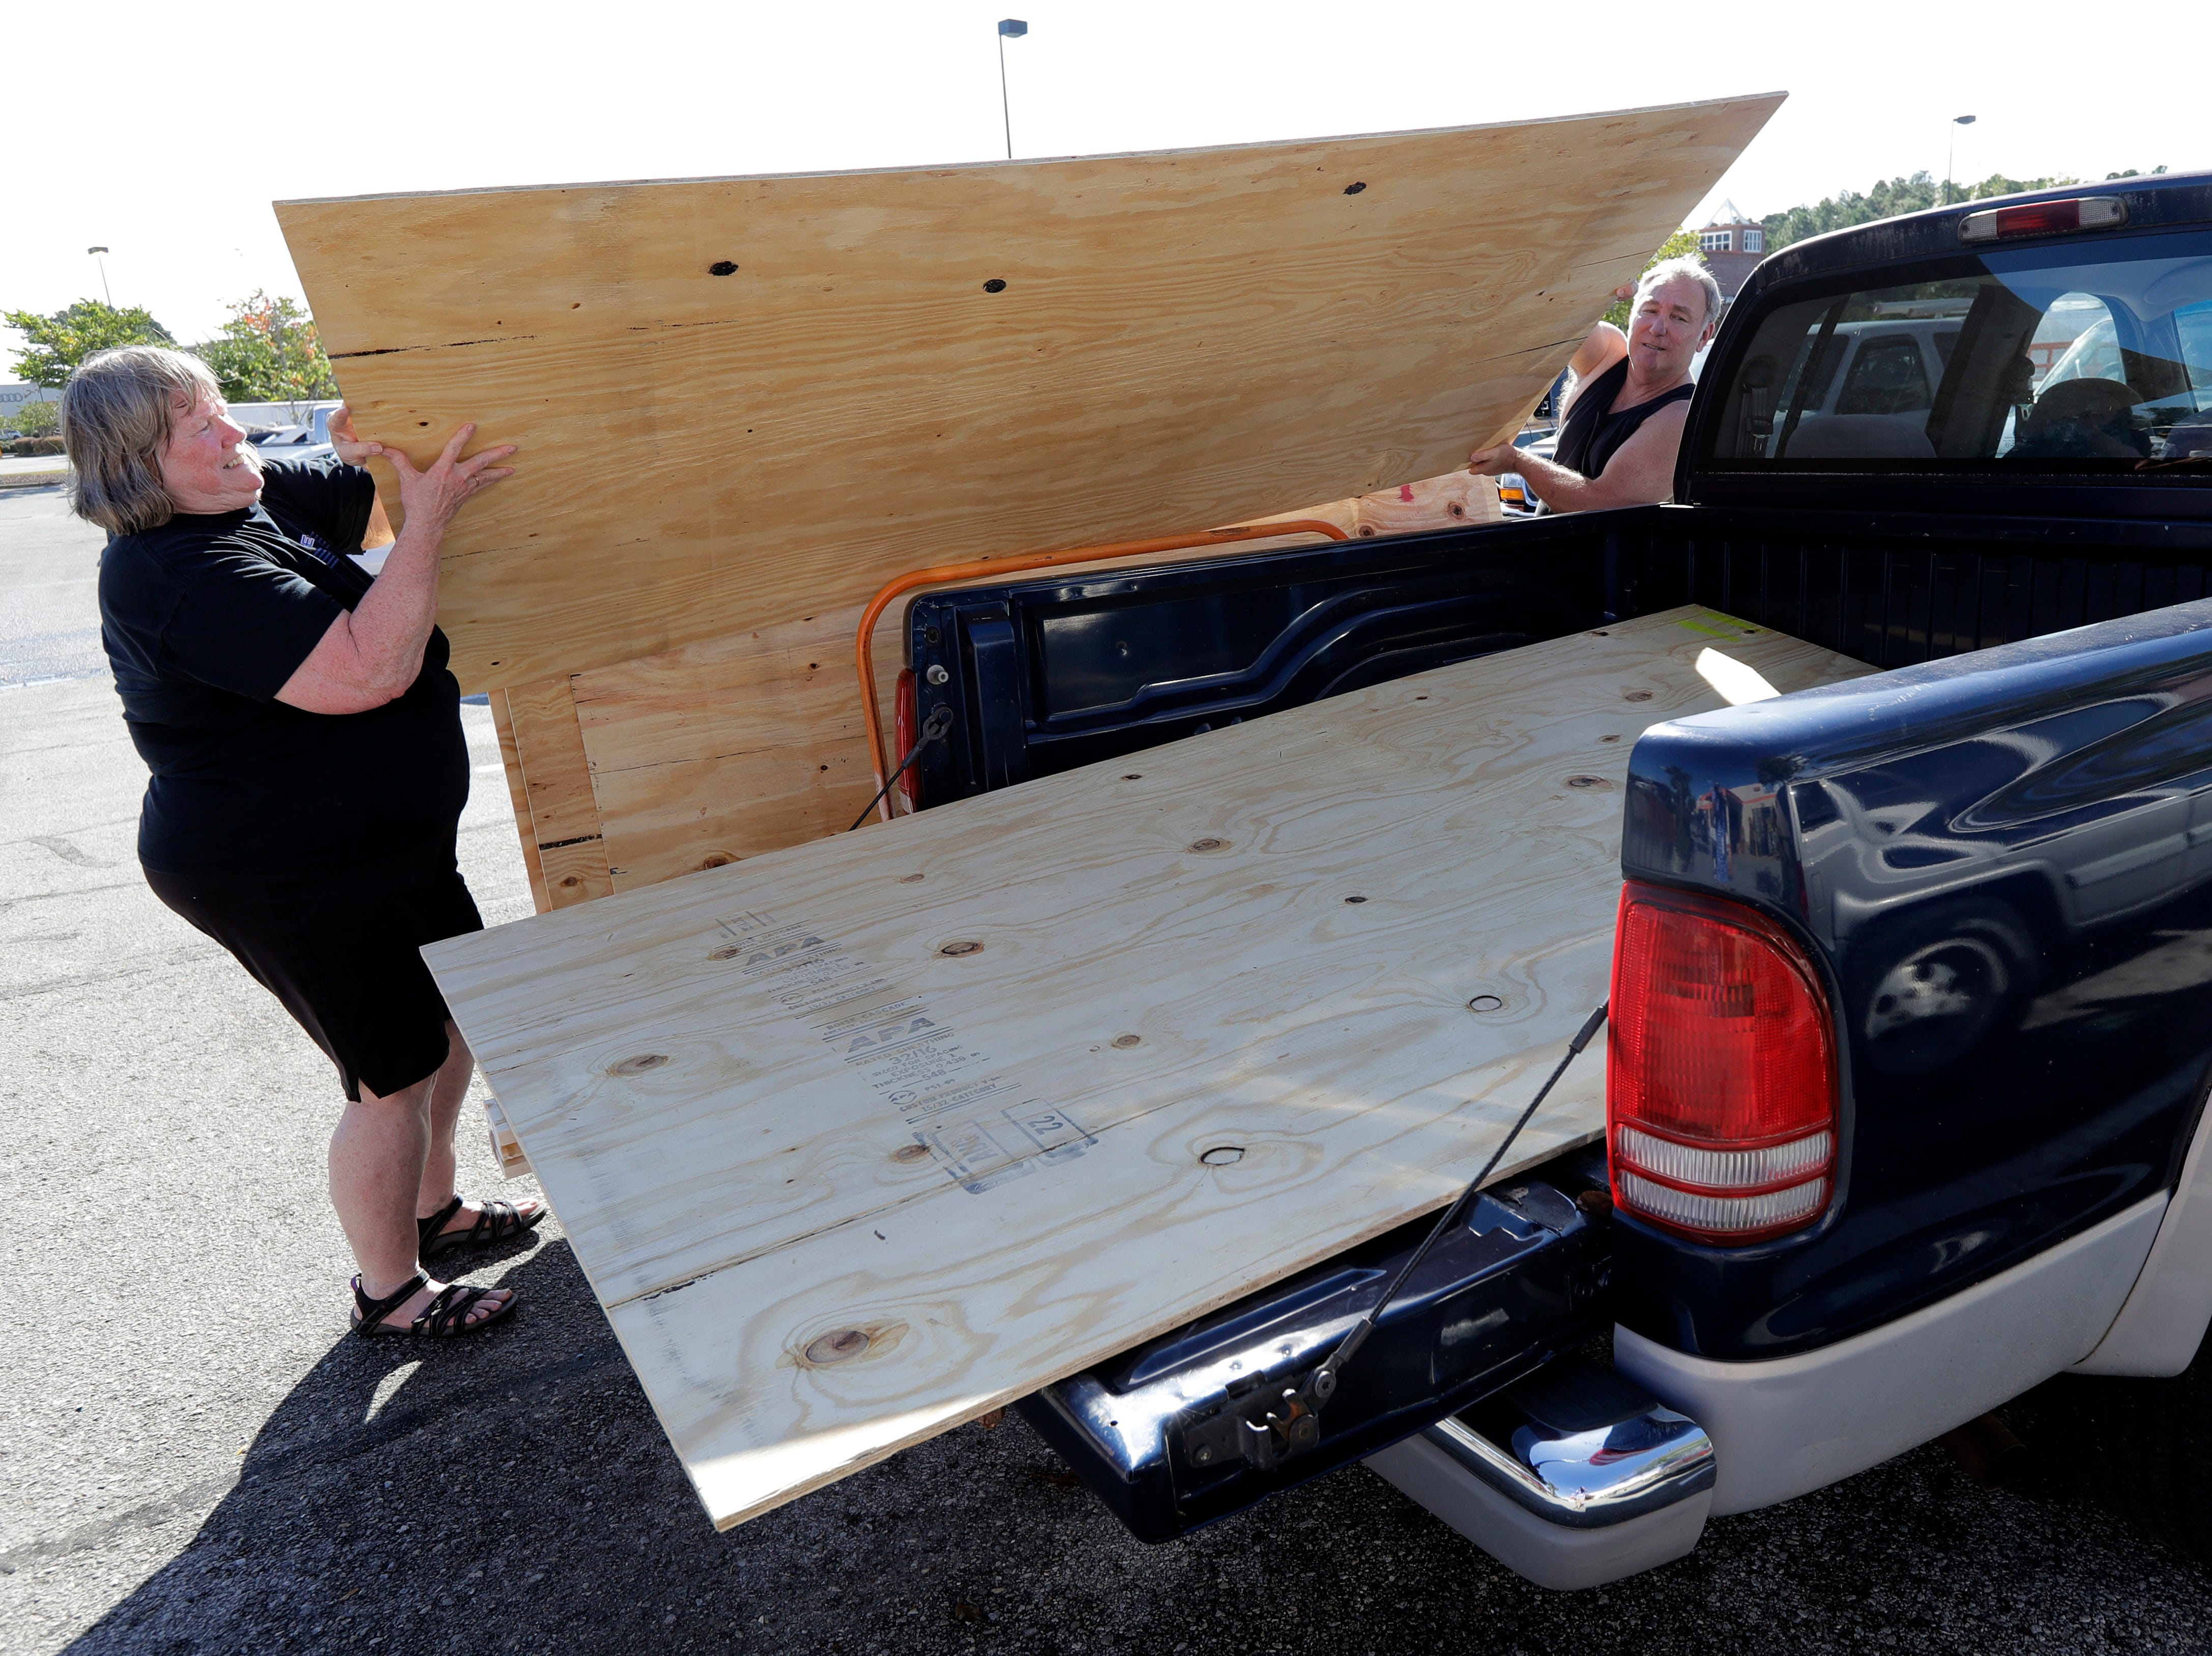 Mickey Manes, right, and Diane Manes, left, load plywood into their truck in advance of Hurricane Florence in Wilmington, N.C., Wednesday, Sept. 12, 2018. Florence exploded into a potentially catastrophic hurricane Monday as it closed in on North and South Carolina, carrying winds up to 140 mph (220 kph) and water that could wreak havoc over a wide stretch of the eastern United States later this week.